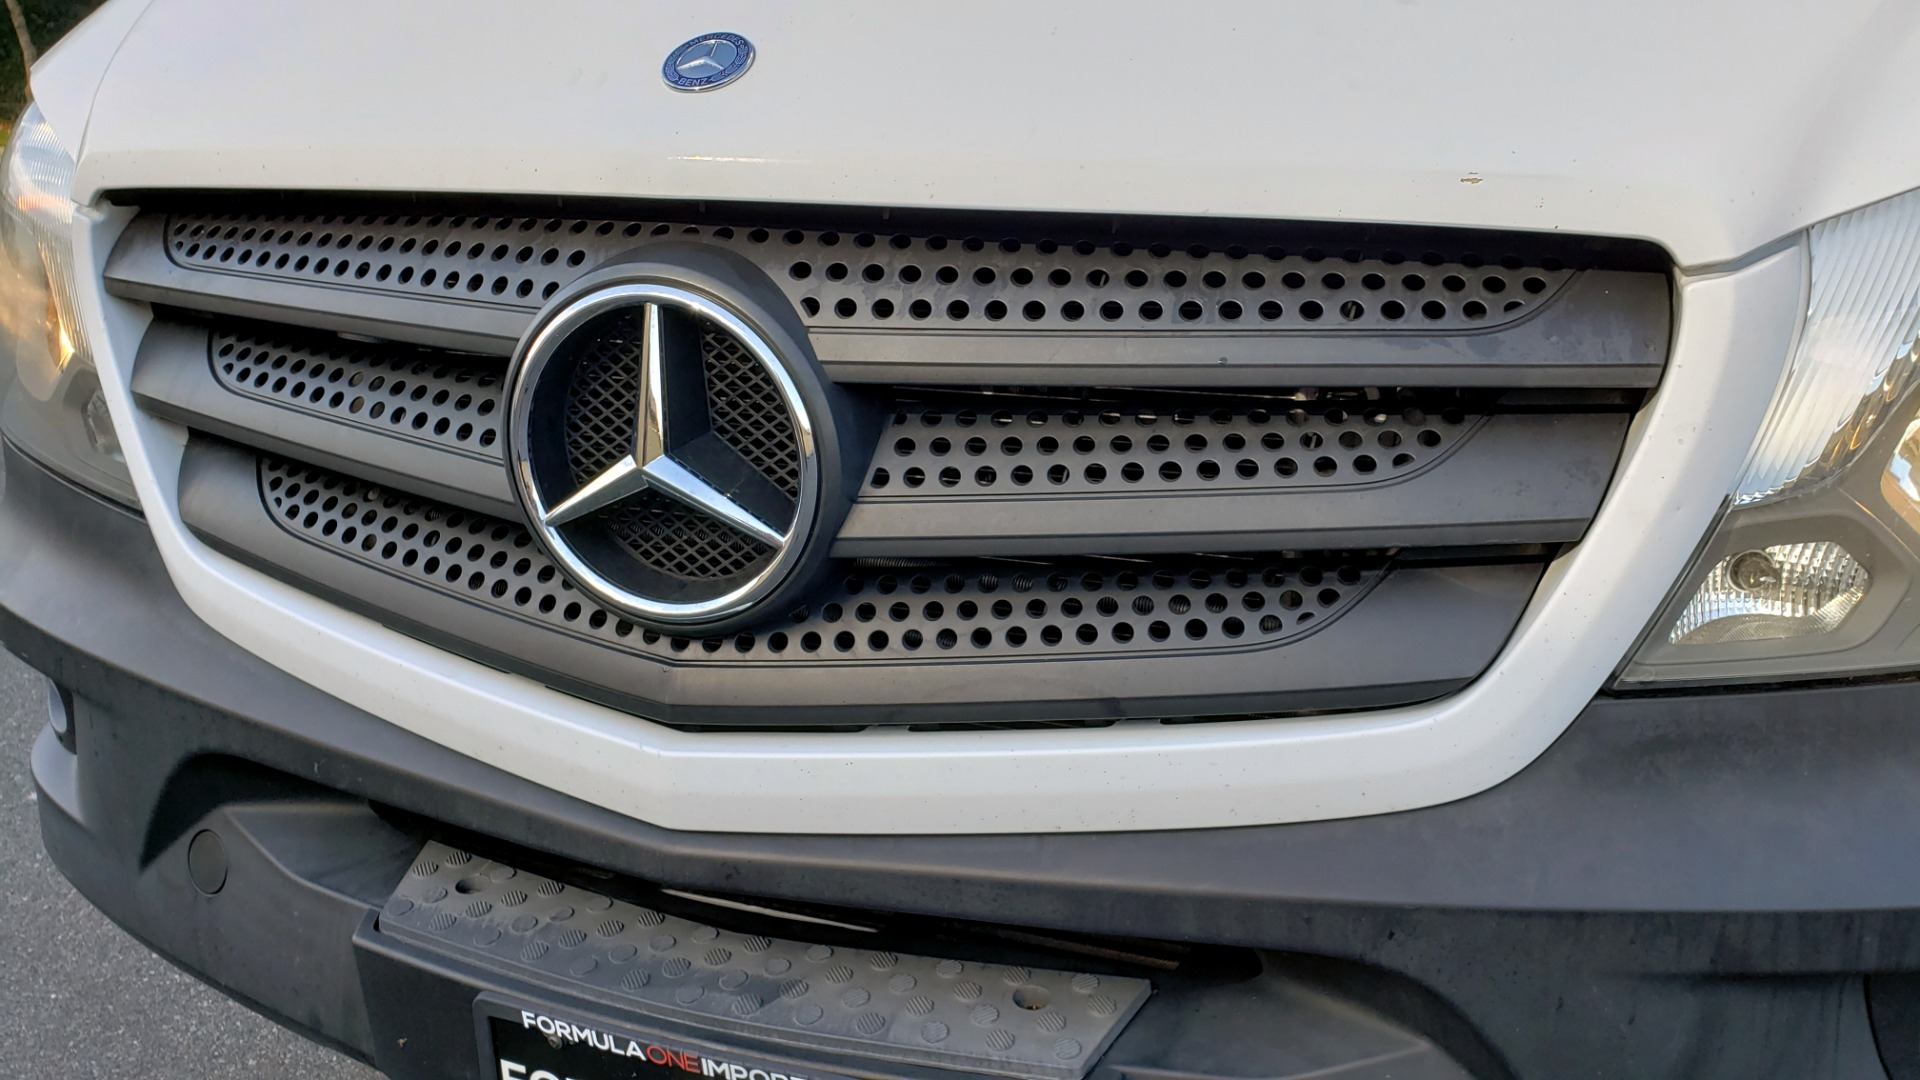 Used 2015 Mercedes-Benz SPRINTER CARGO VAN 4x4 3500 170 EXT / 3.0L V6 TURBO DIESEL / 5-SPD AUTO / REARVIEW for sale Sold at Formula Imports in Charlotte NC 28227 38